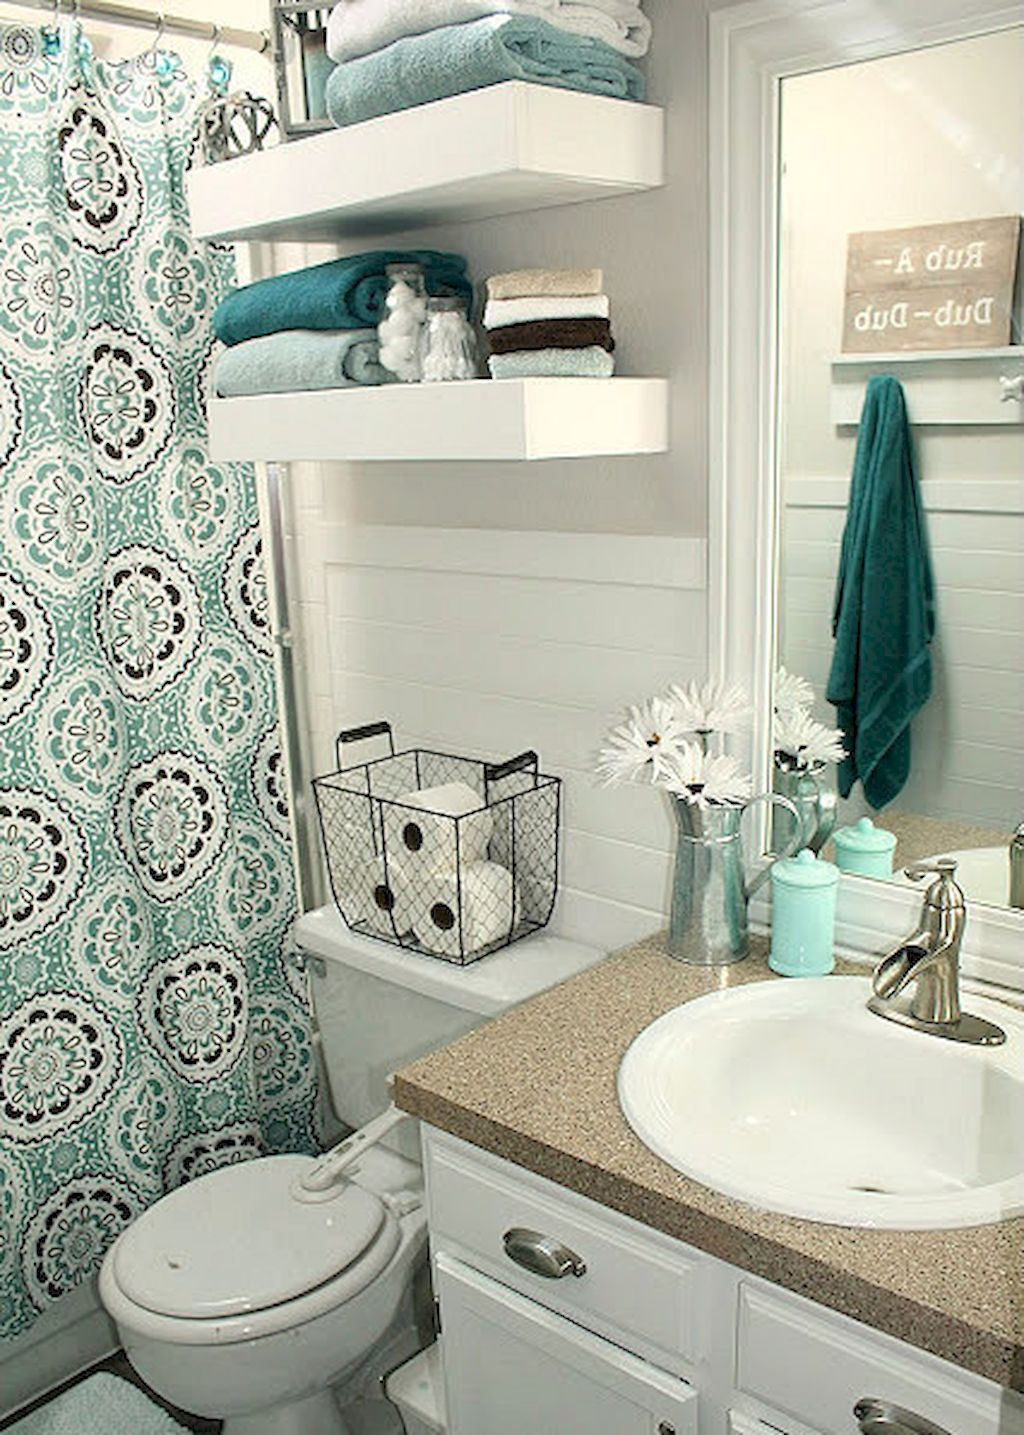 bathroom decorating ideas gorgeous 30 diy small apartment decorating ideas on a budget NWJAGKF